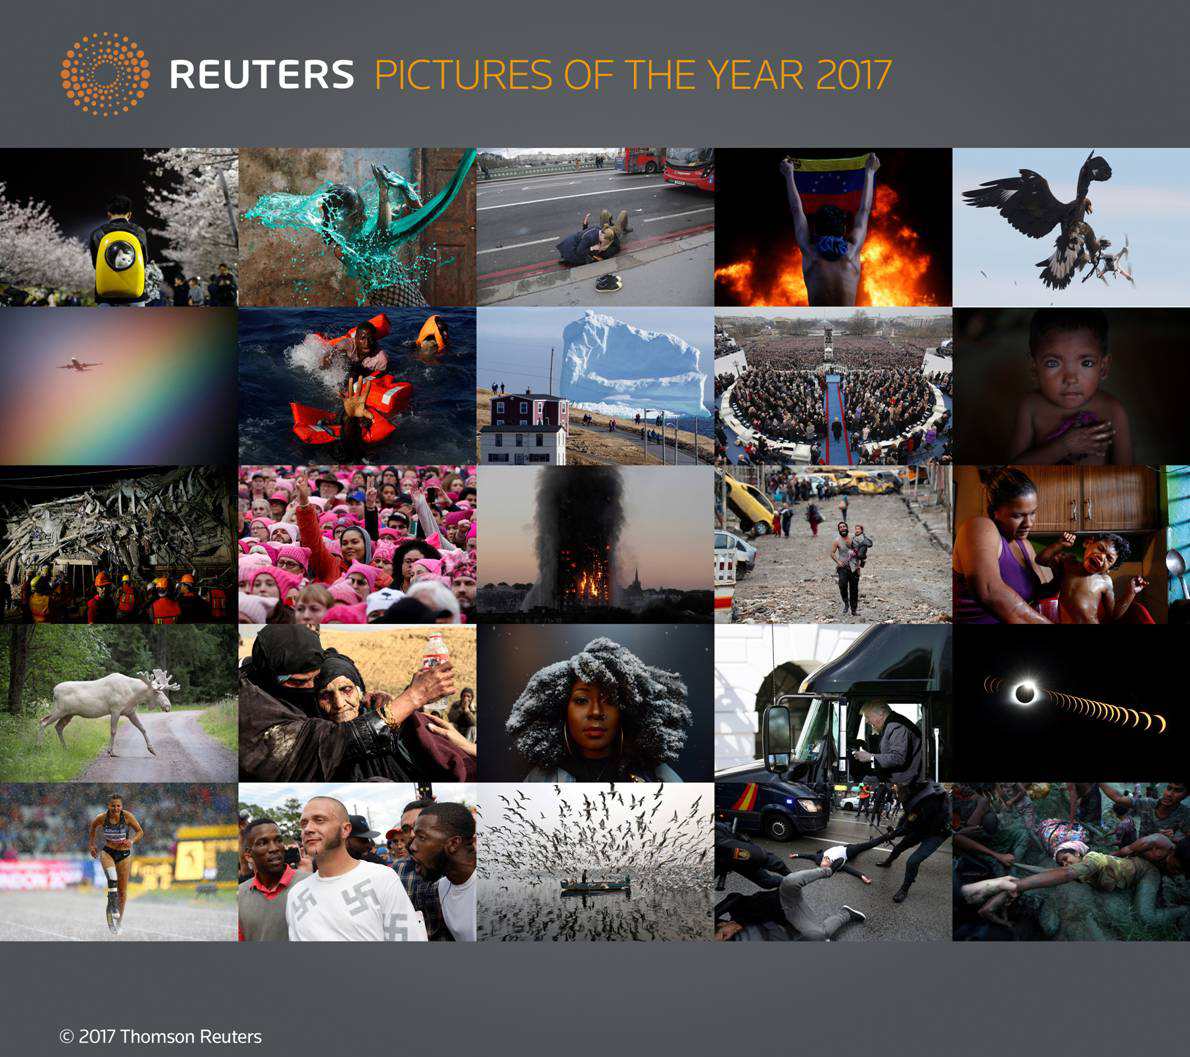 Reuters Pictures of the Year 2017